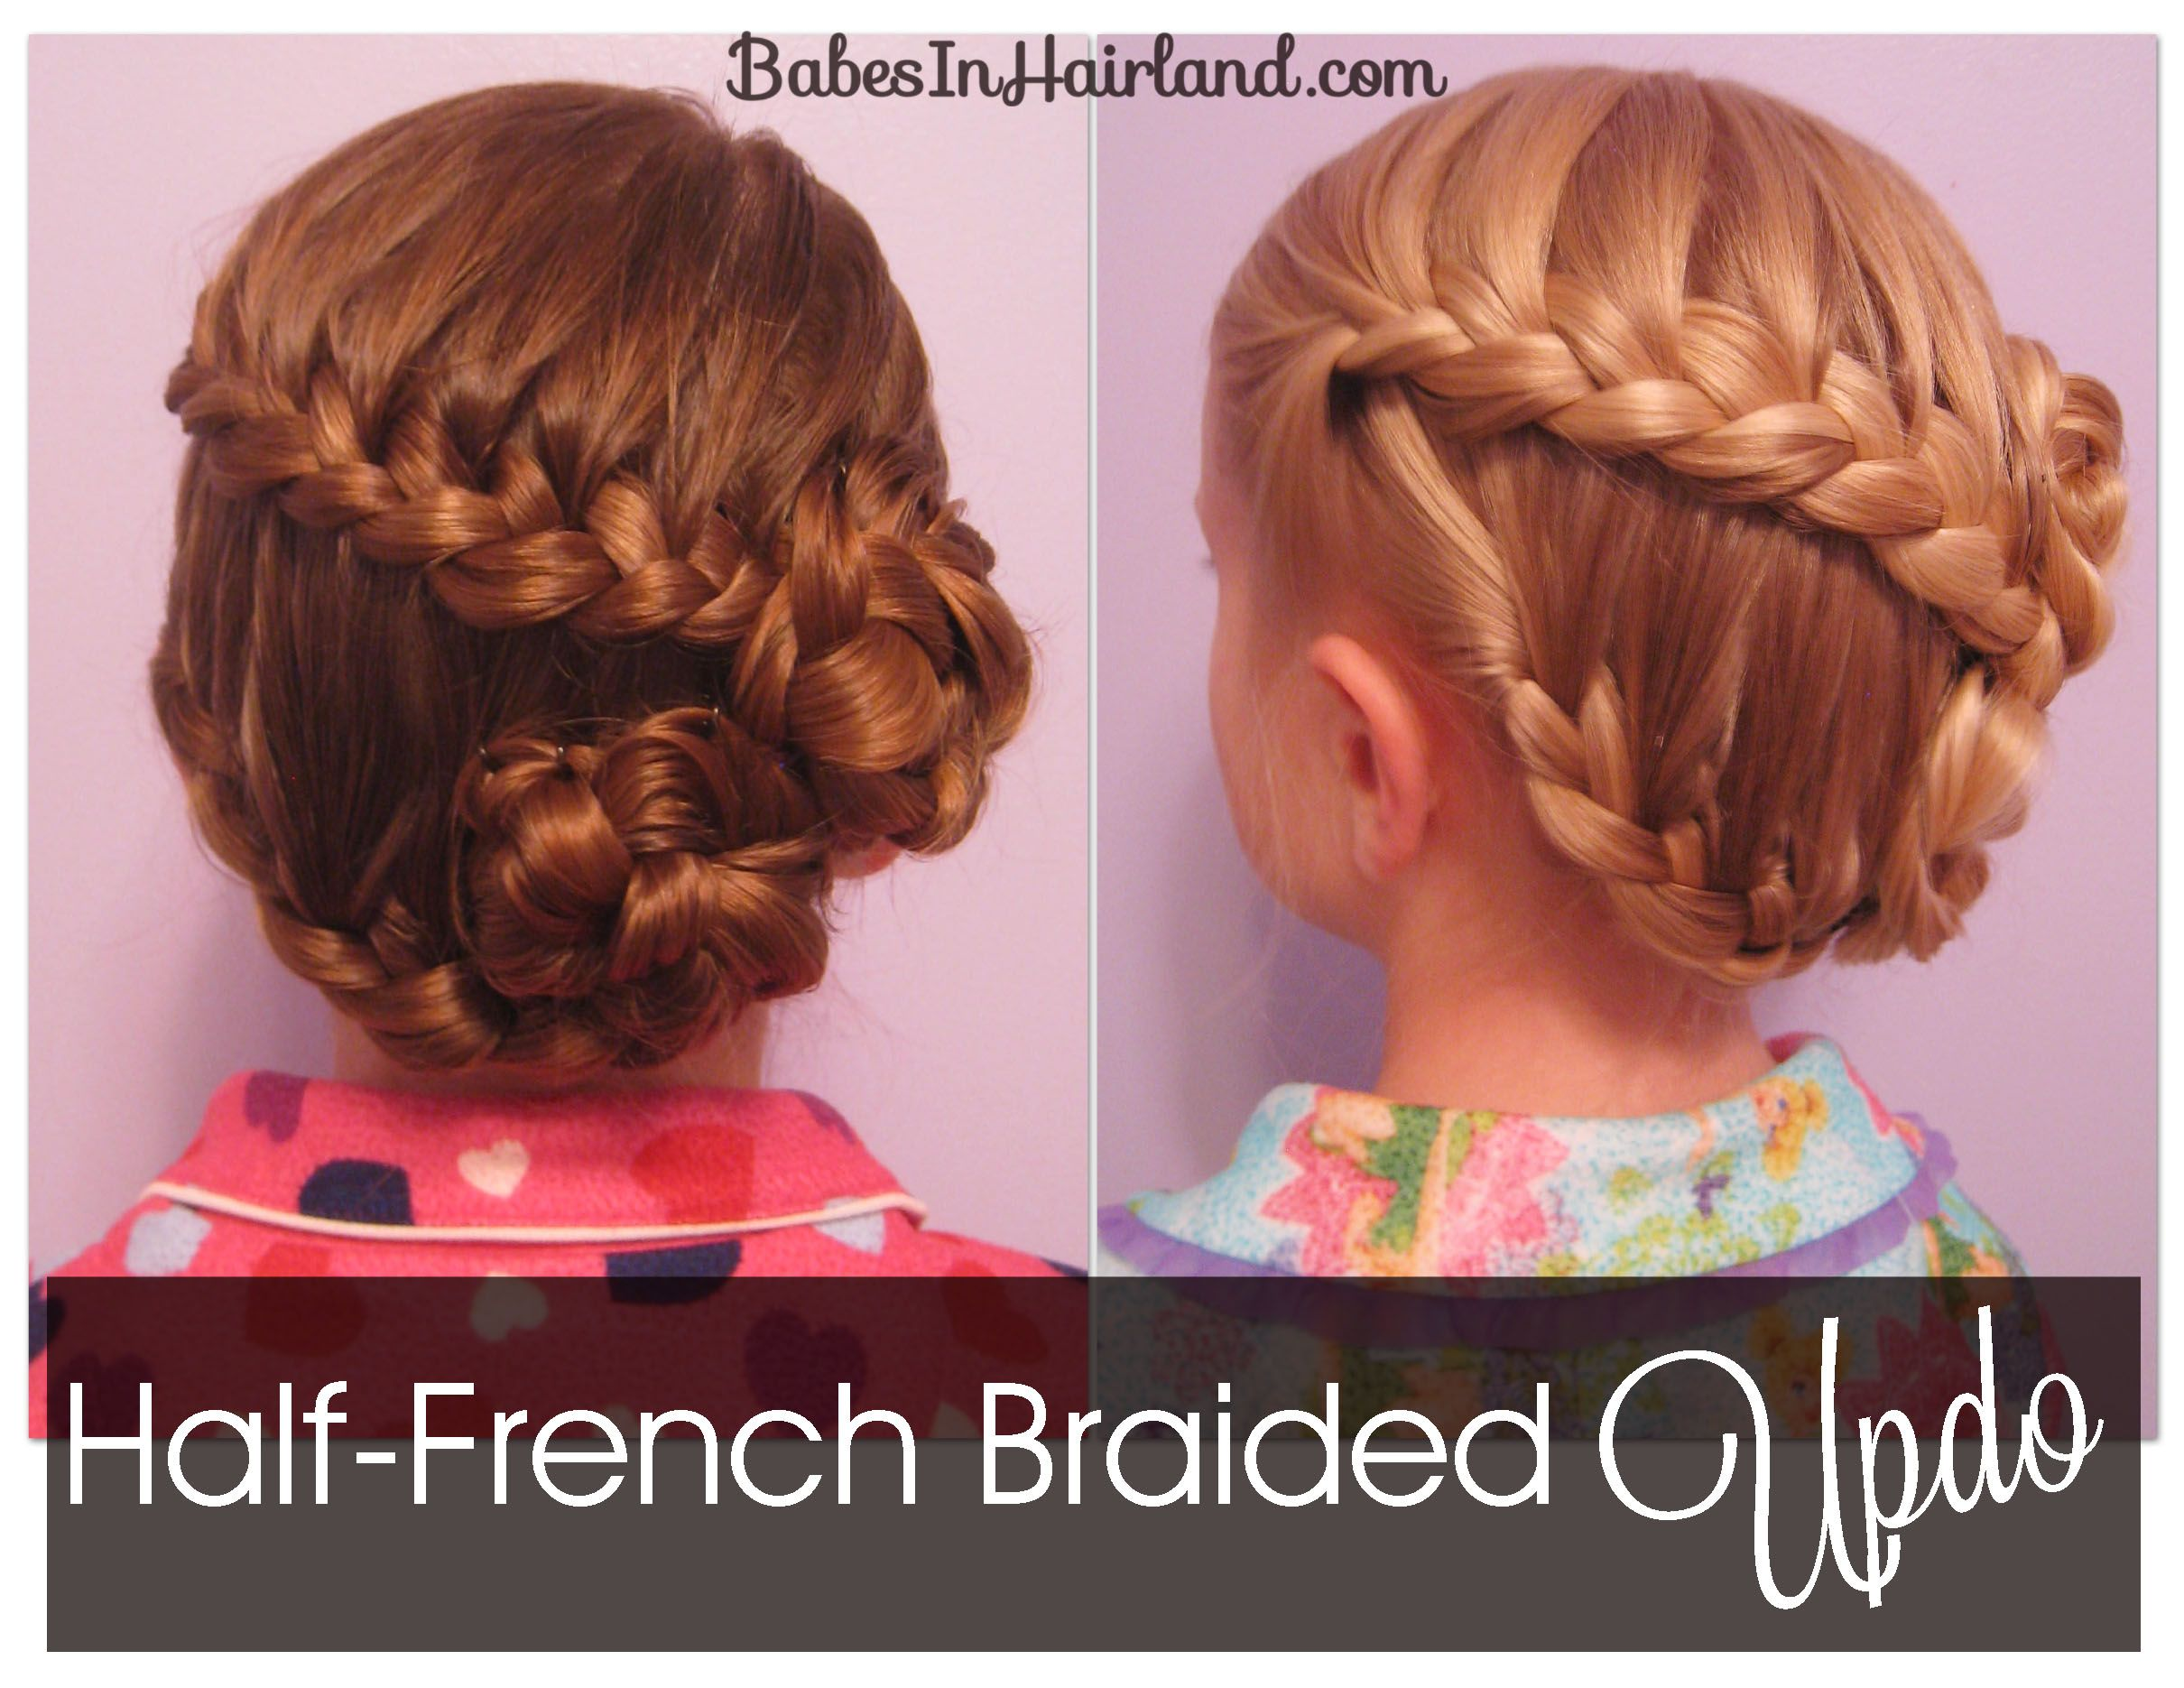 Halffrench braid updo from babes in hairland updo frenchbraids